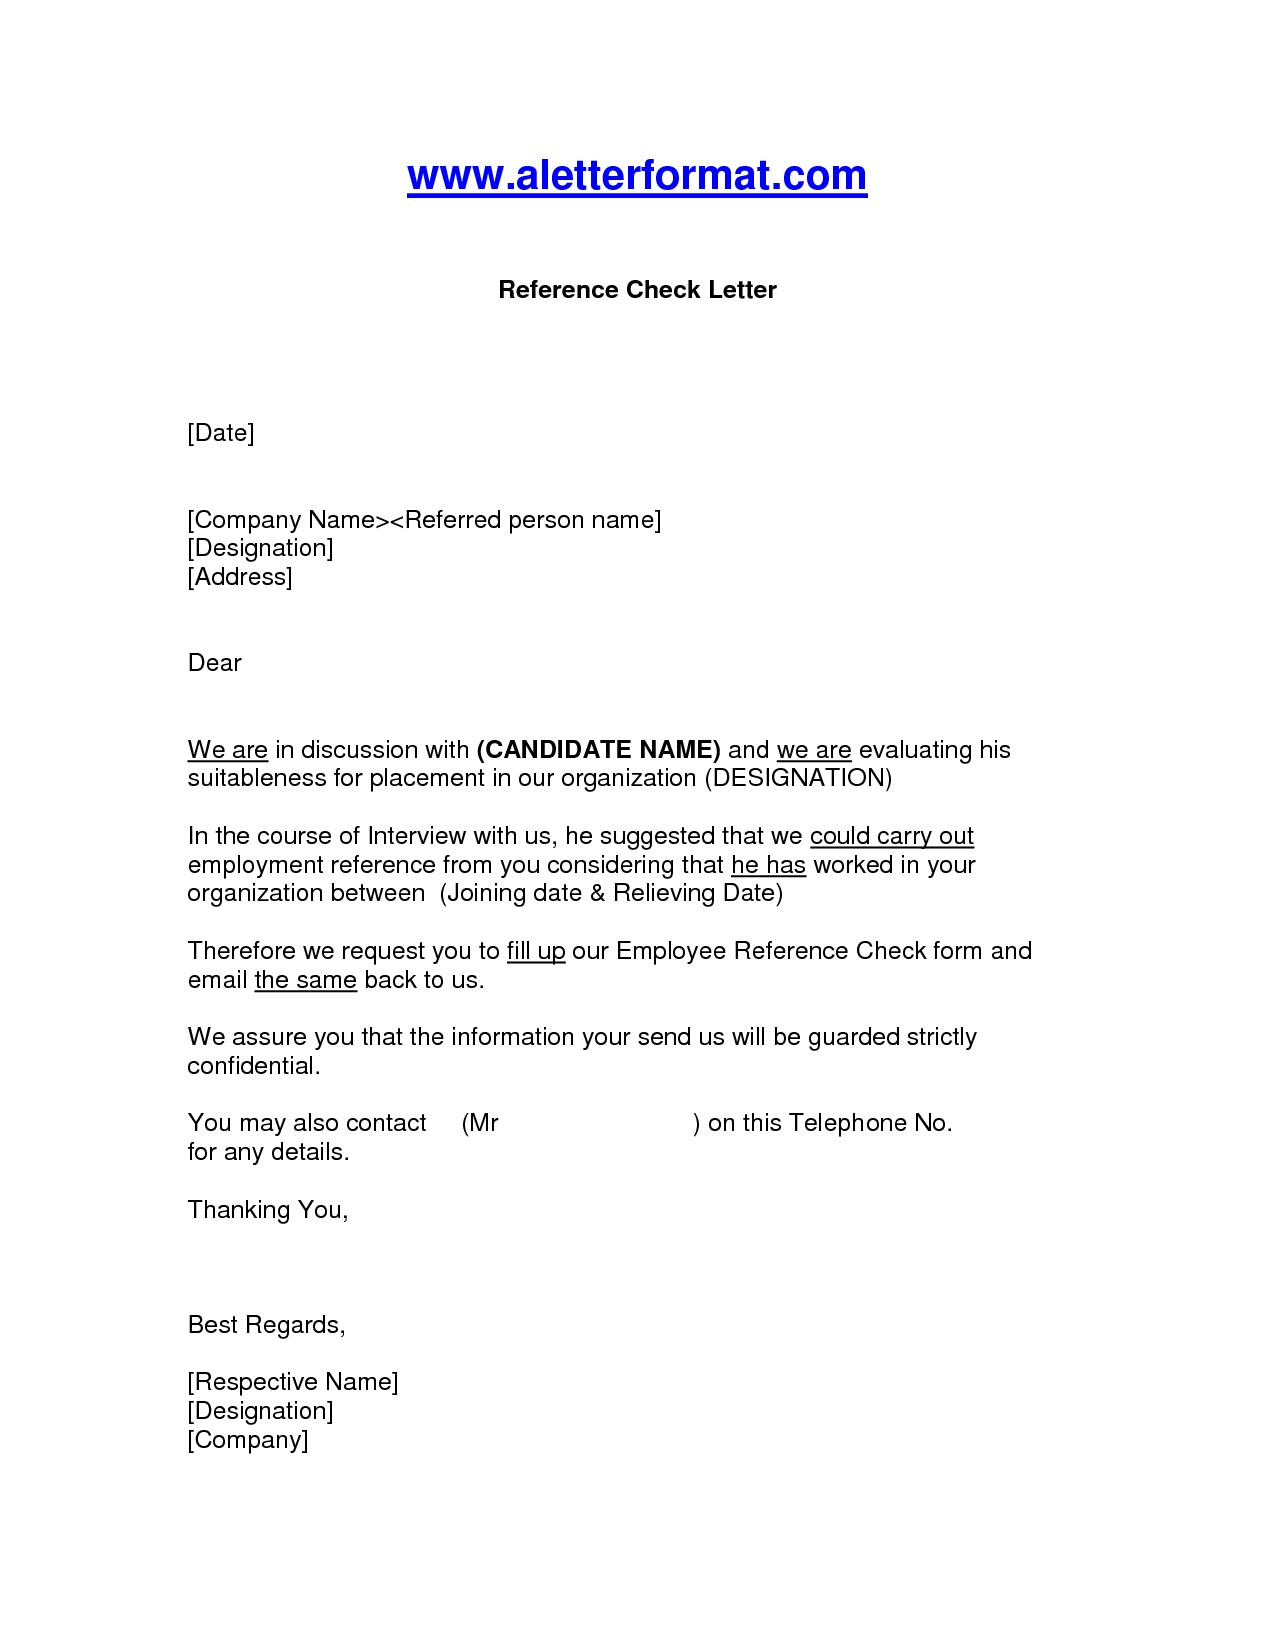 Business Referral Letter Template Examples Letter Templates